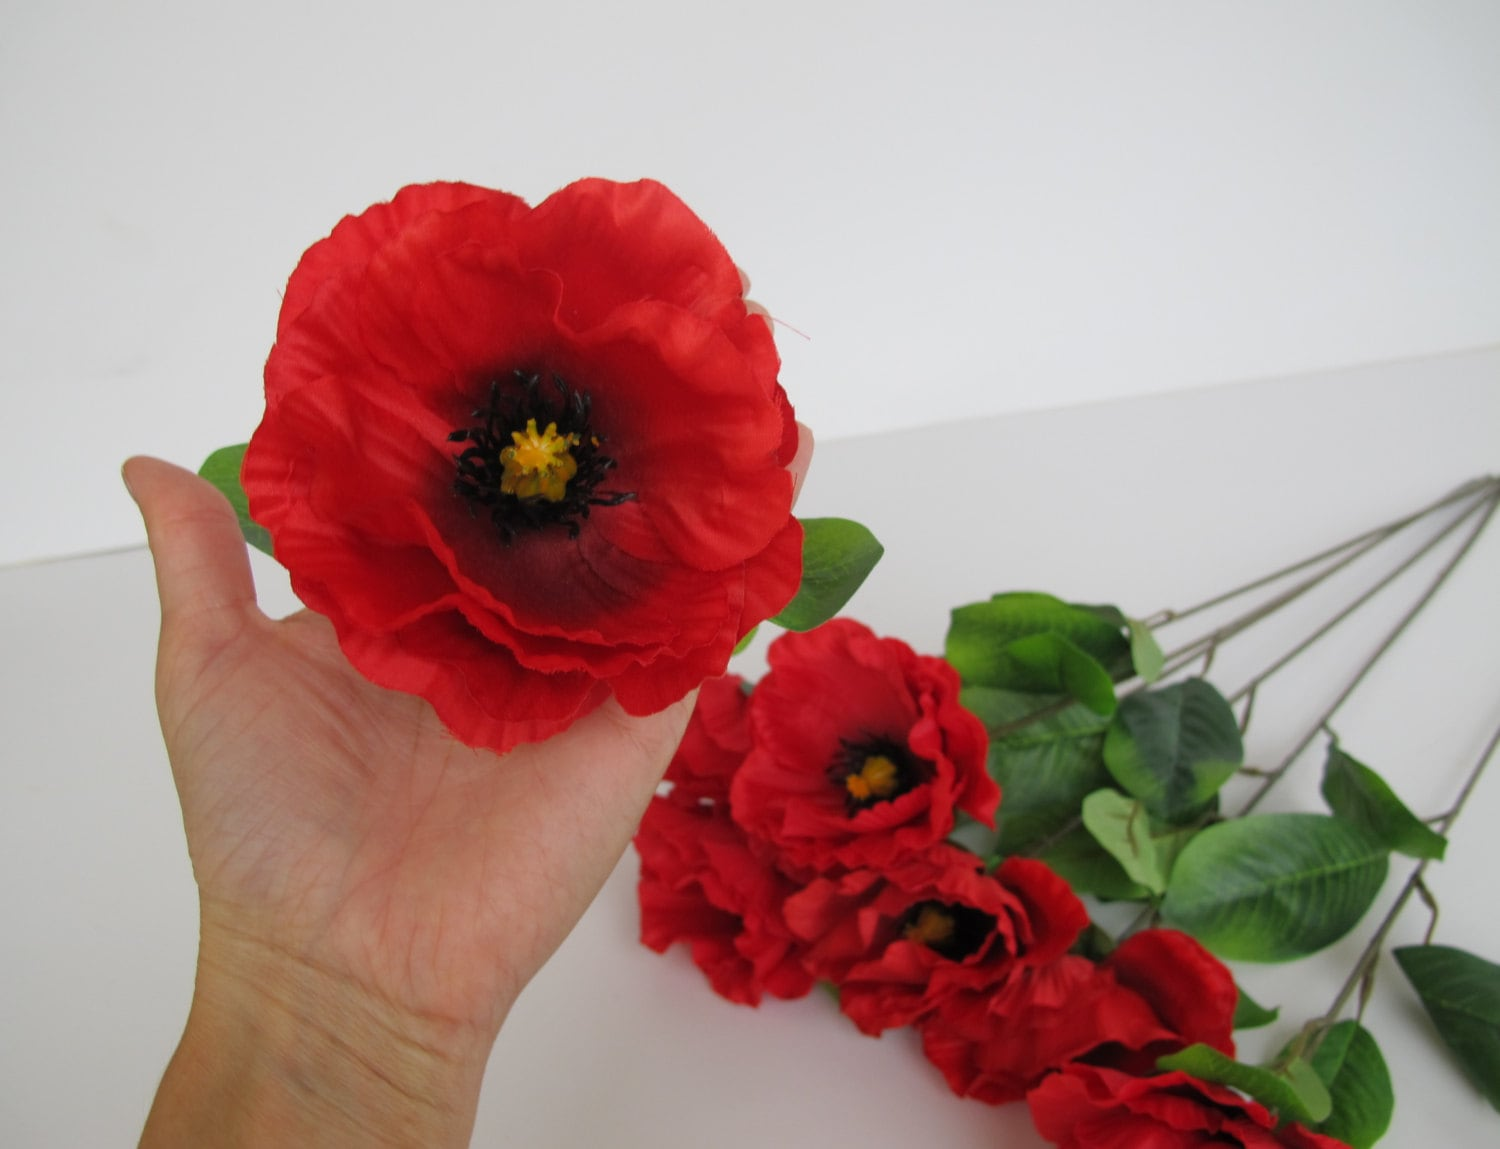 7 silk poppies artificial flowers big red with black yellow center 685 shipping mightylinksfo